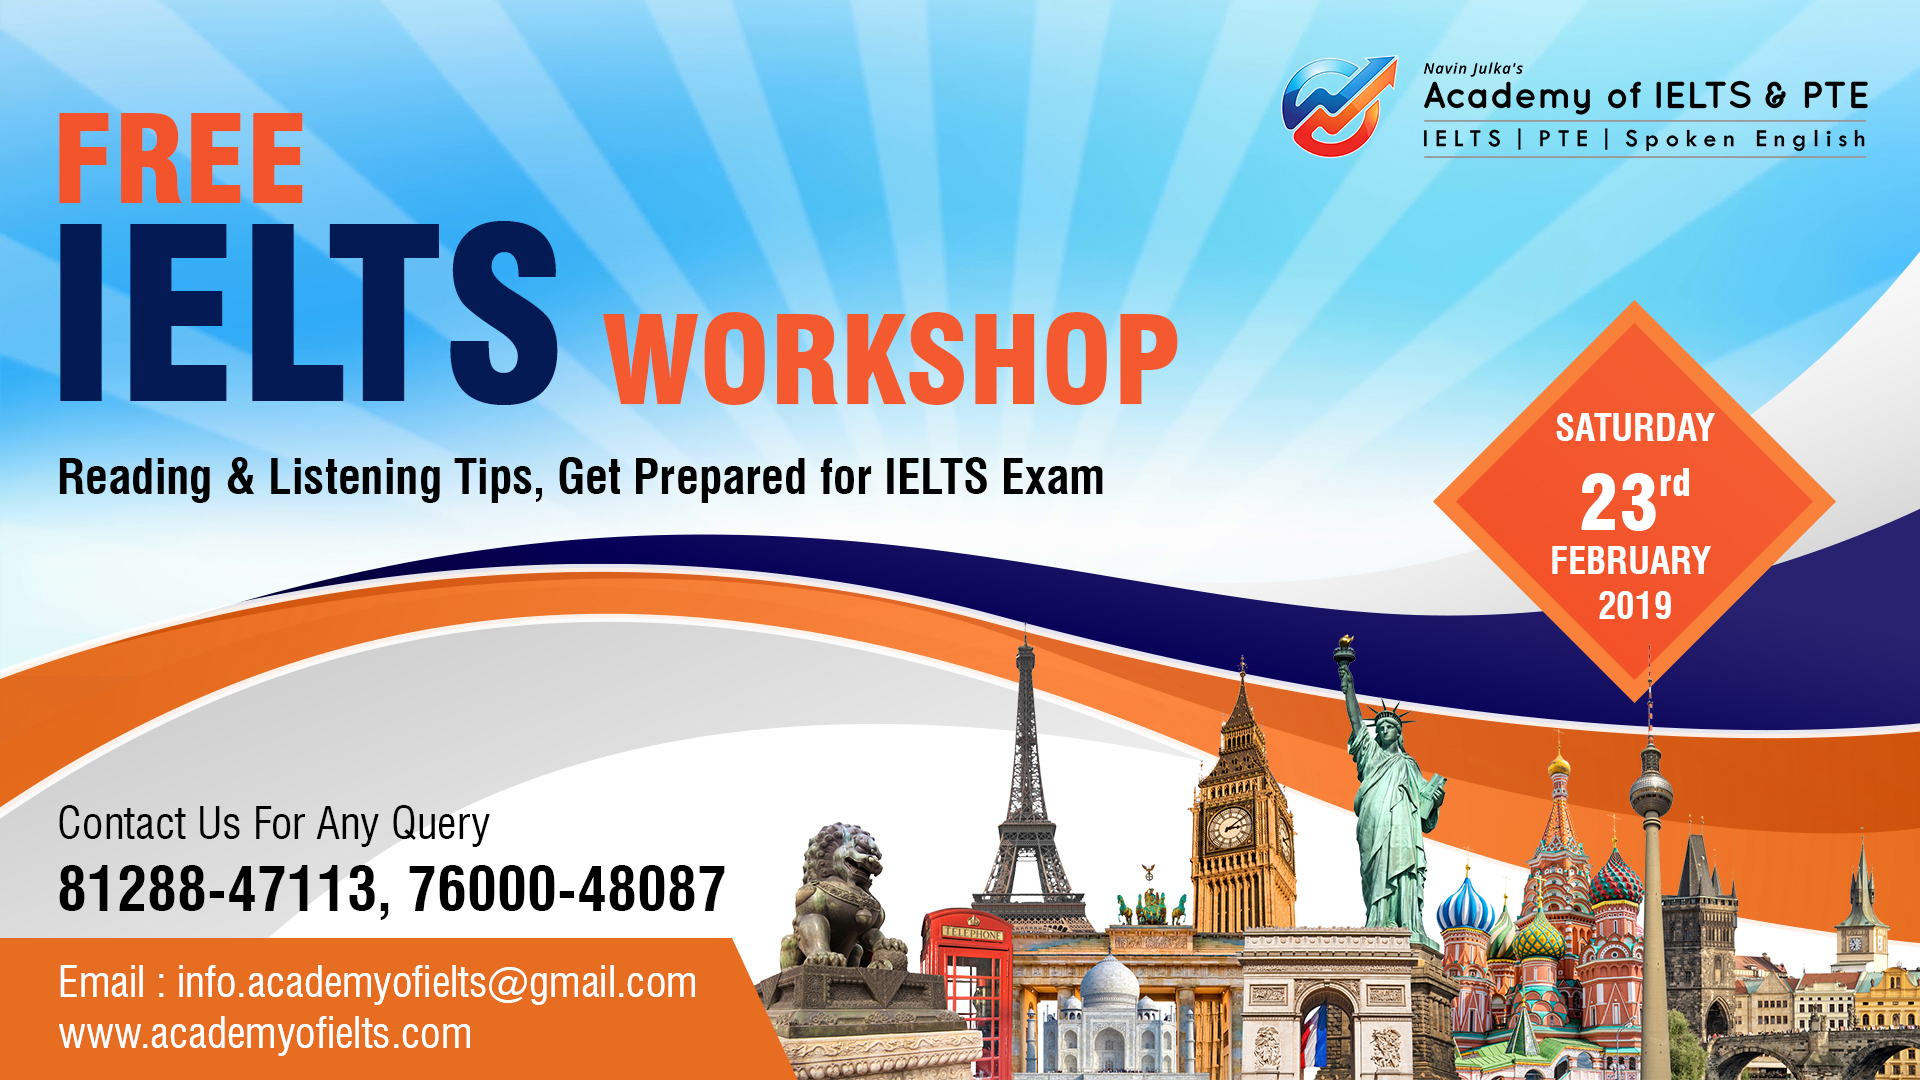 4 Hours FREE IELTS WORKSHOP ON READING AND LISTENING TIPS